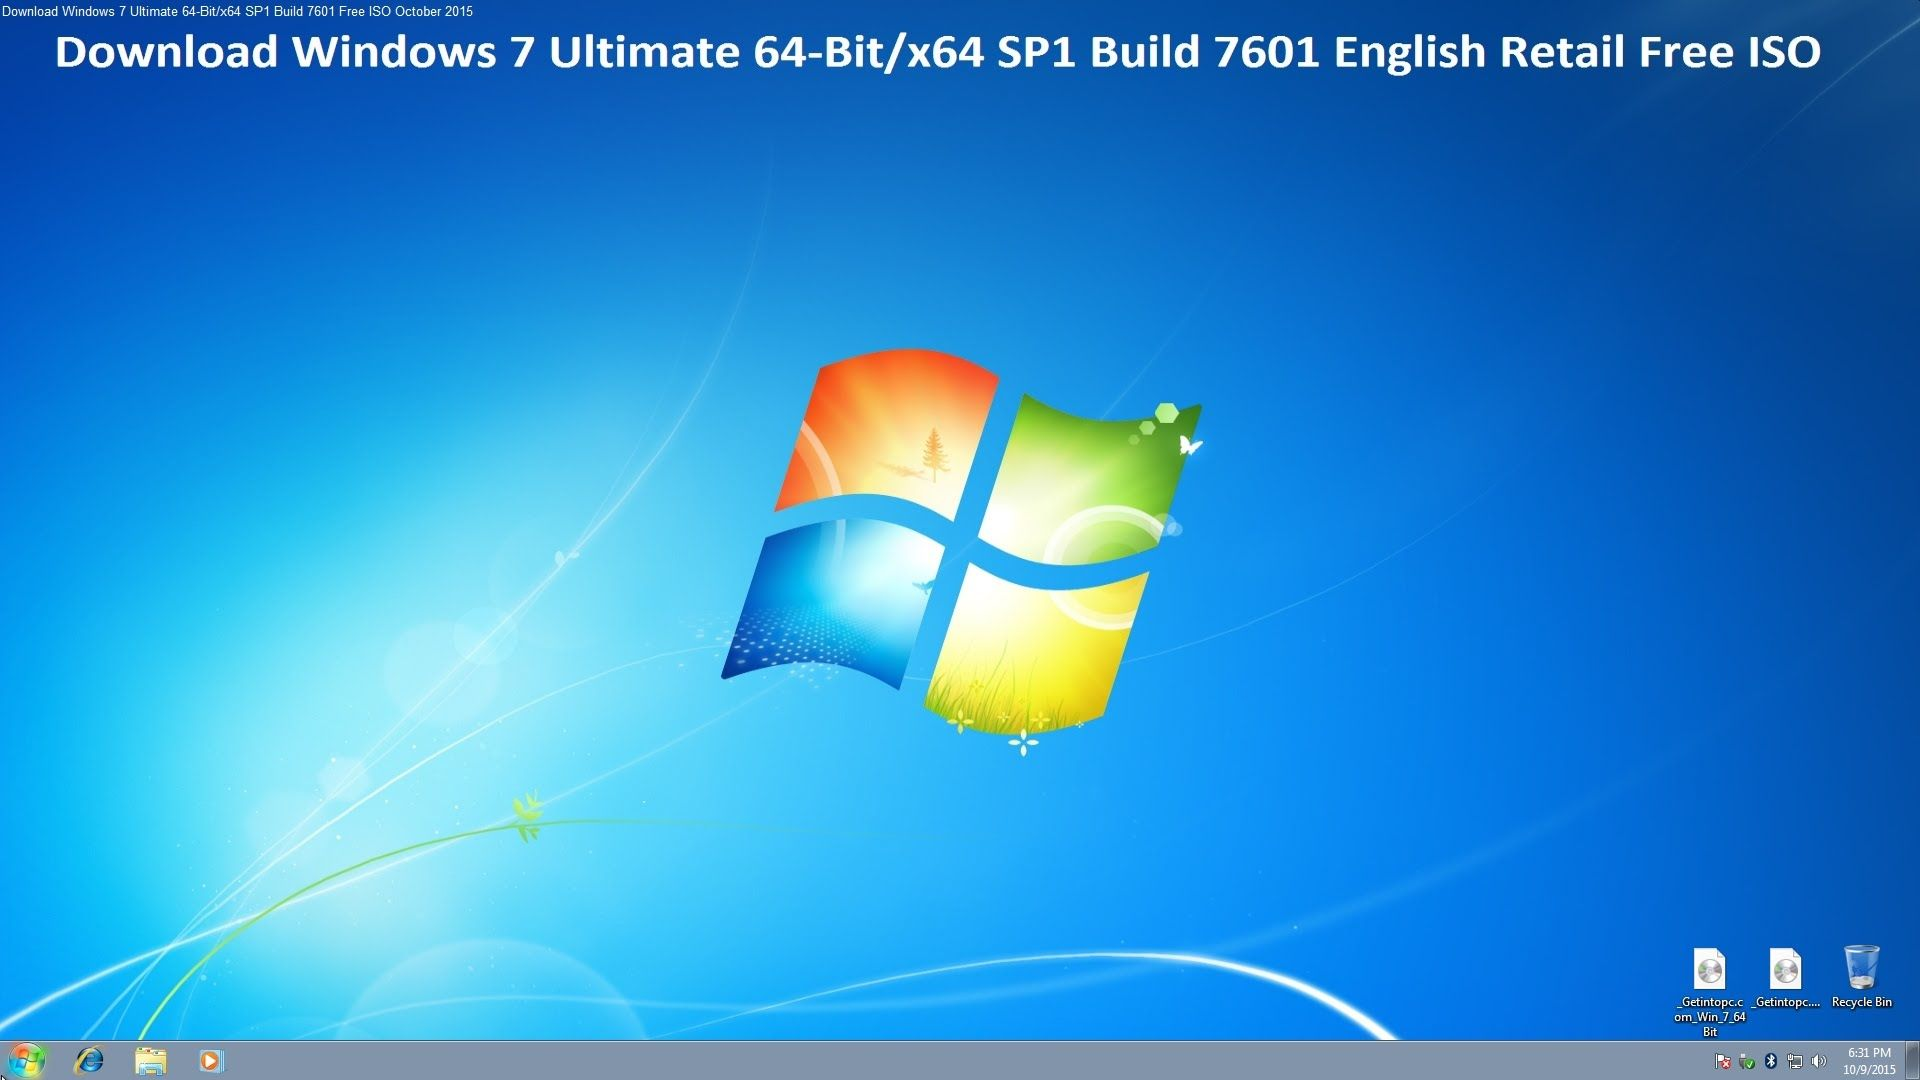 Download Windows 7 Ultimate 64Bit/x64 SP1 Build 7601 Free ISO